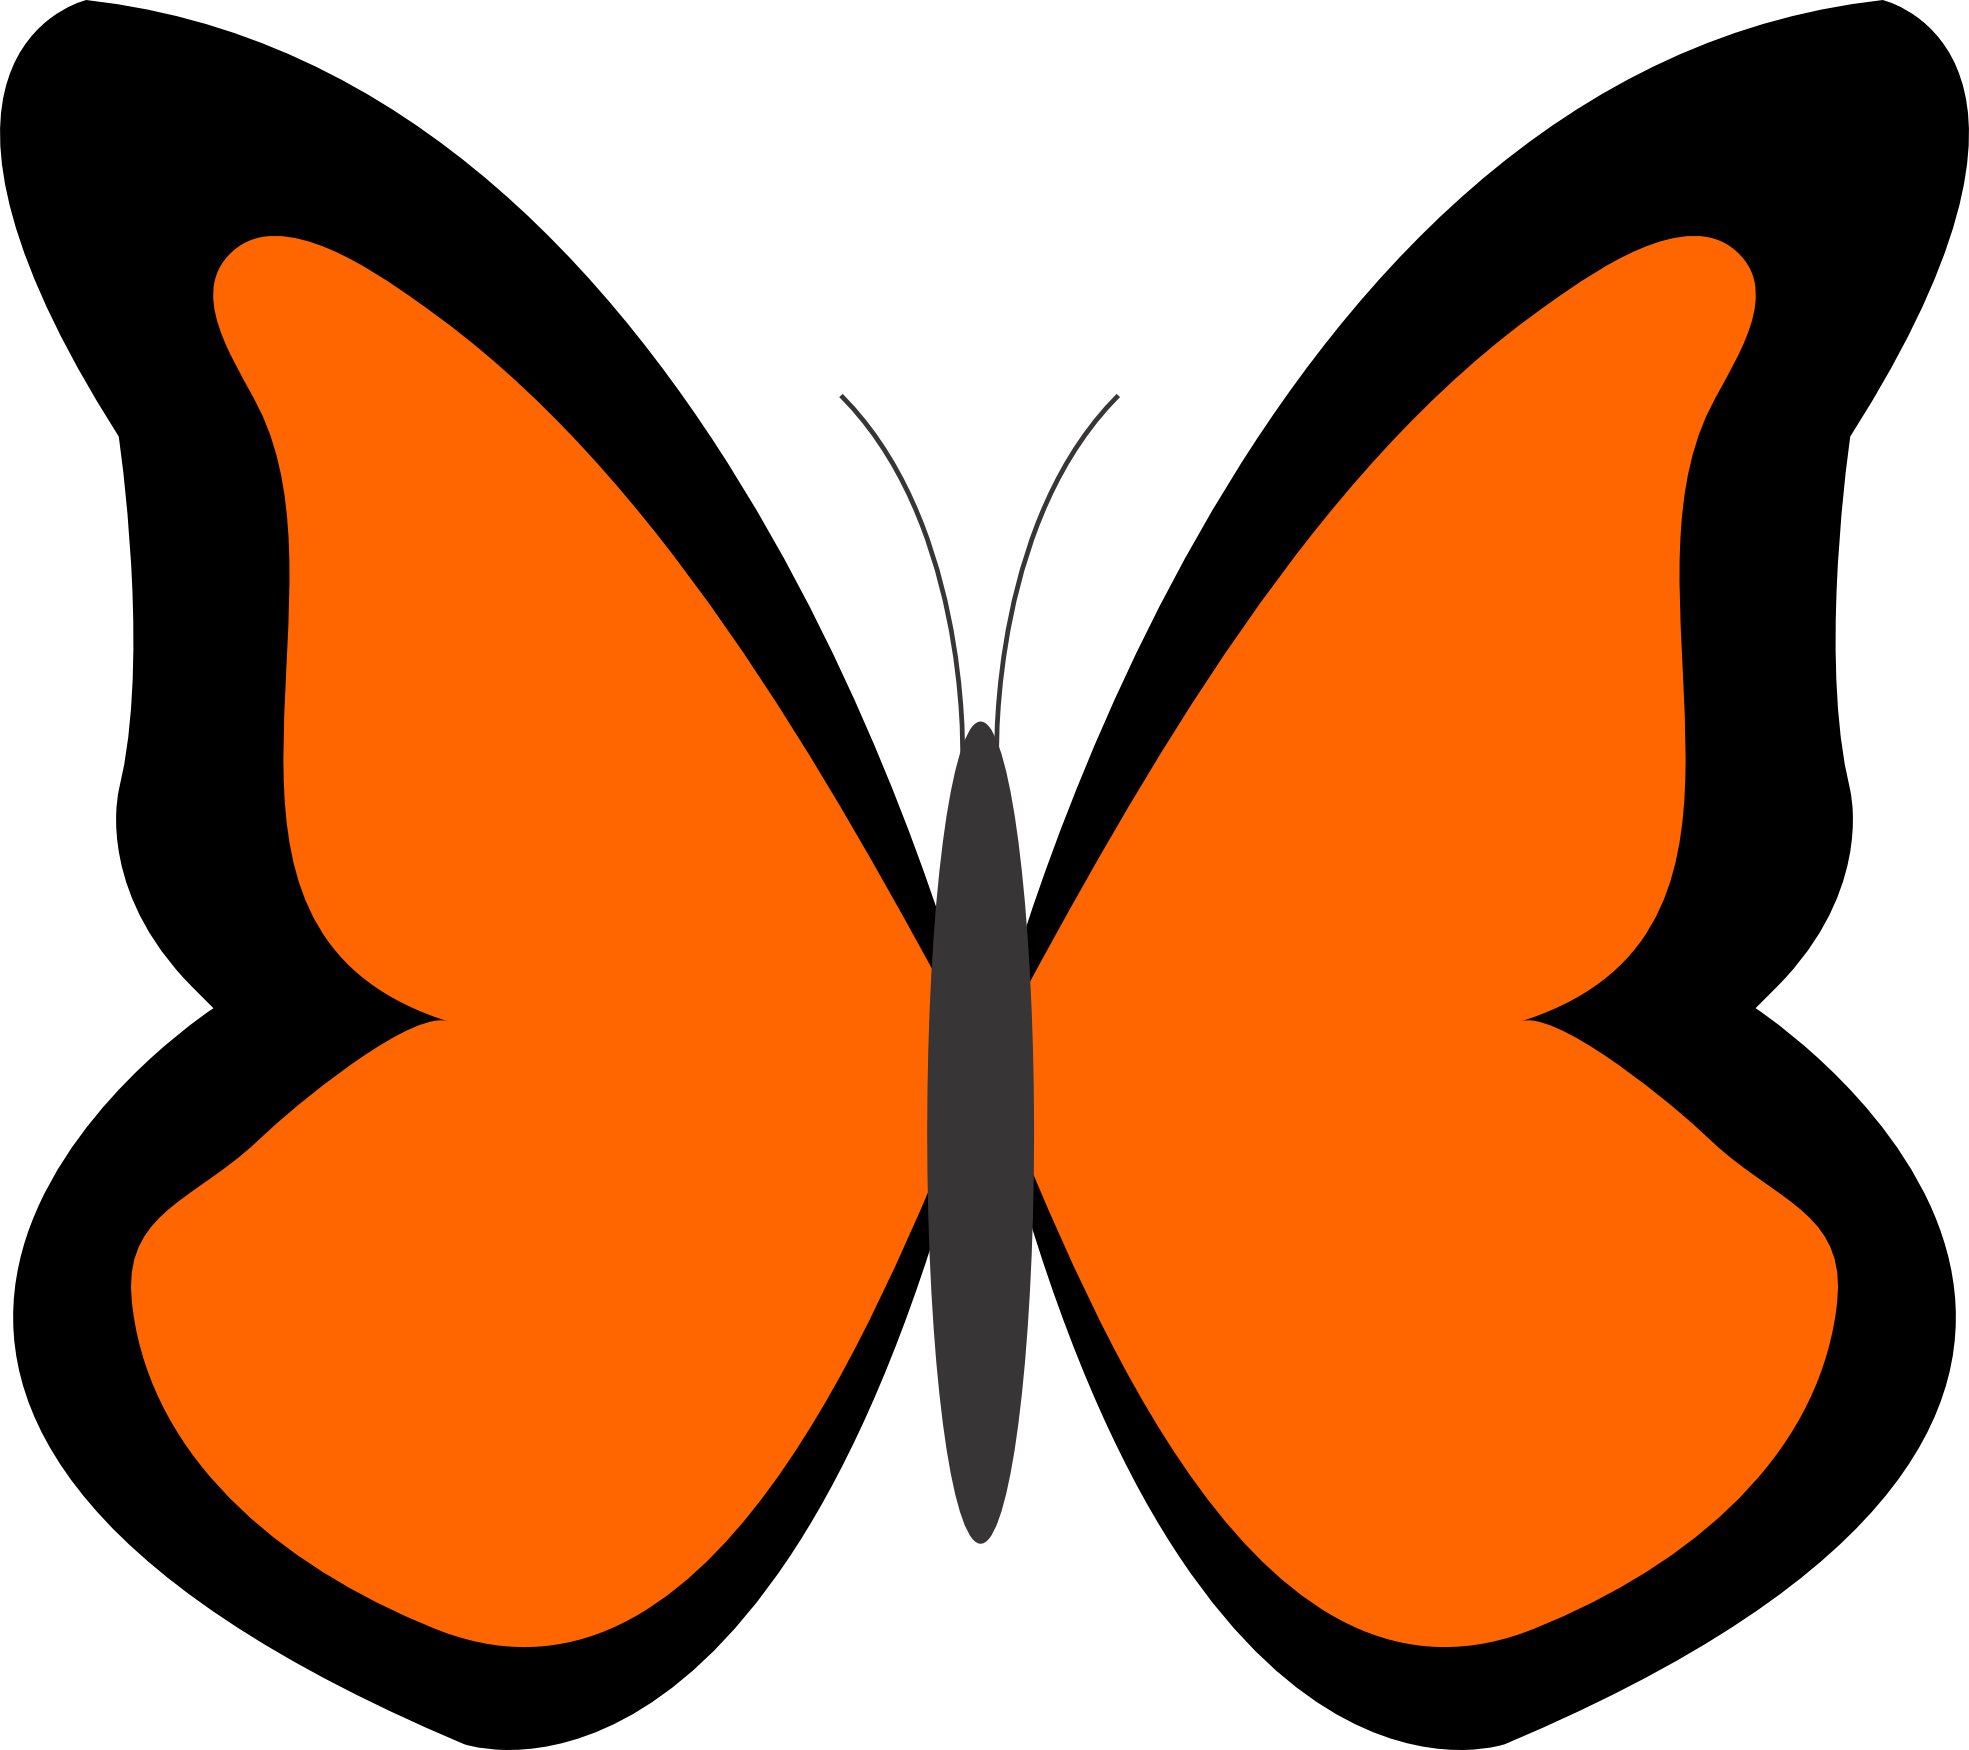 Butterfly Image Clipart - Cliparts.co